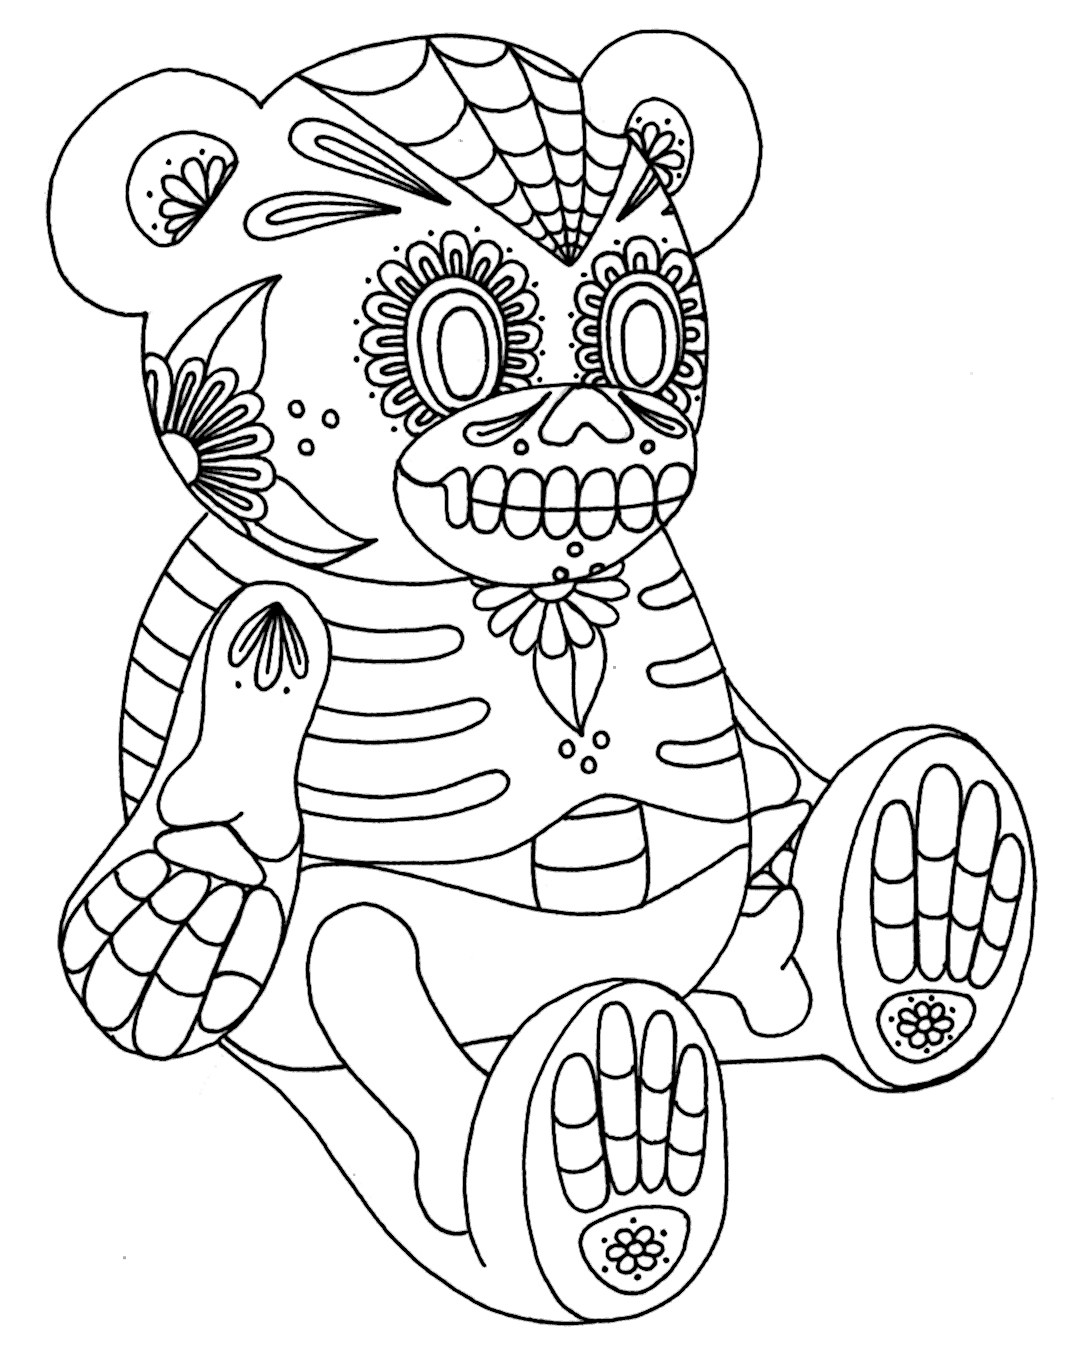 Scary Bear Coloring Pages At Getdrawings Com Free For